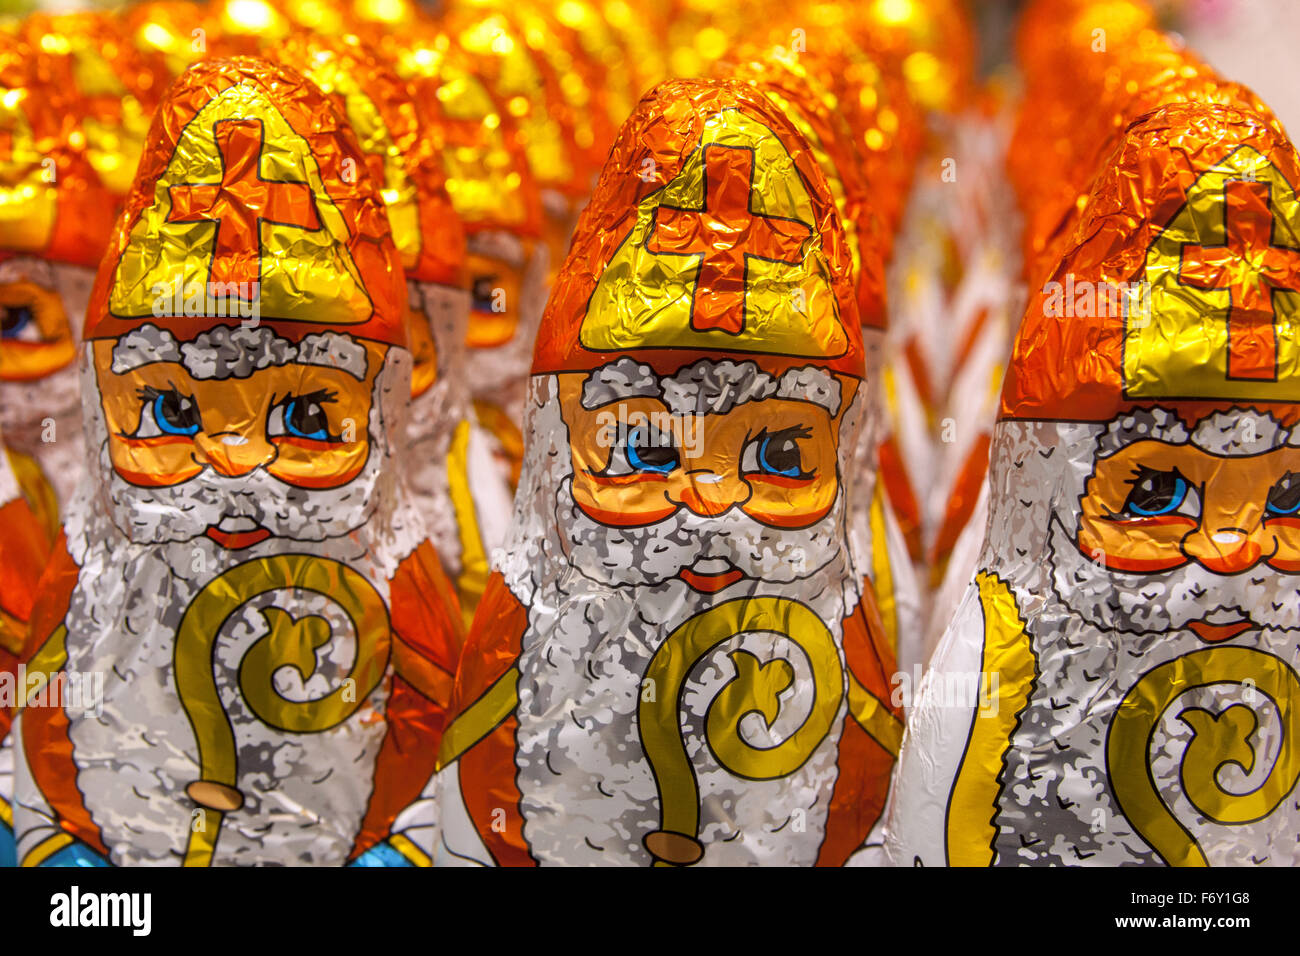 Chocolate figures of Saint Nicholas displayed in a supermarket. Stock Photo